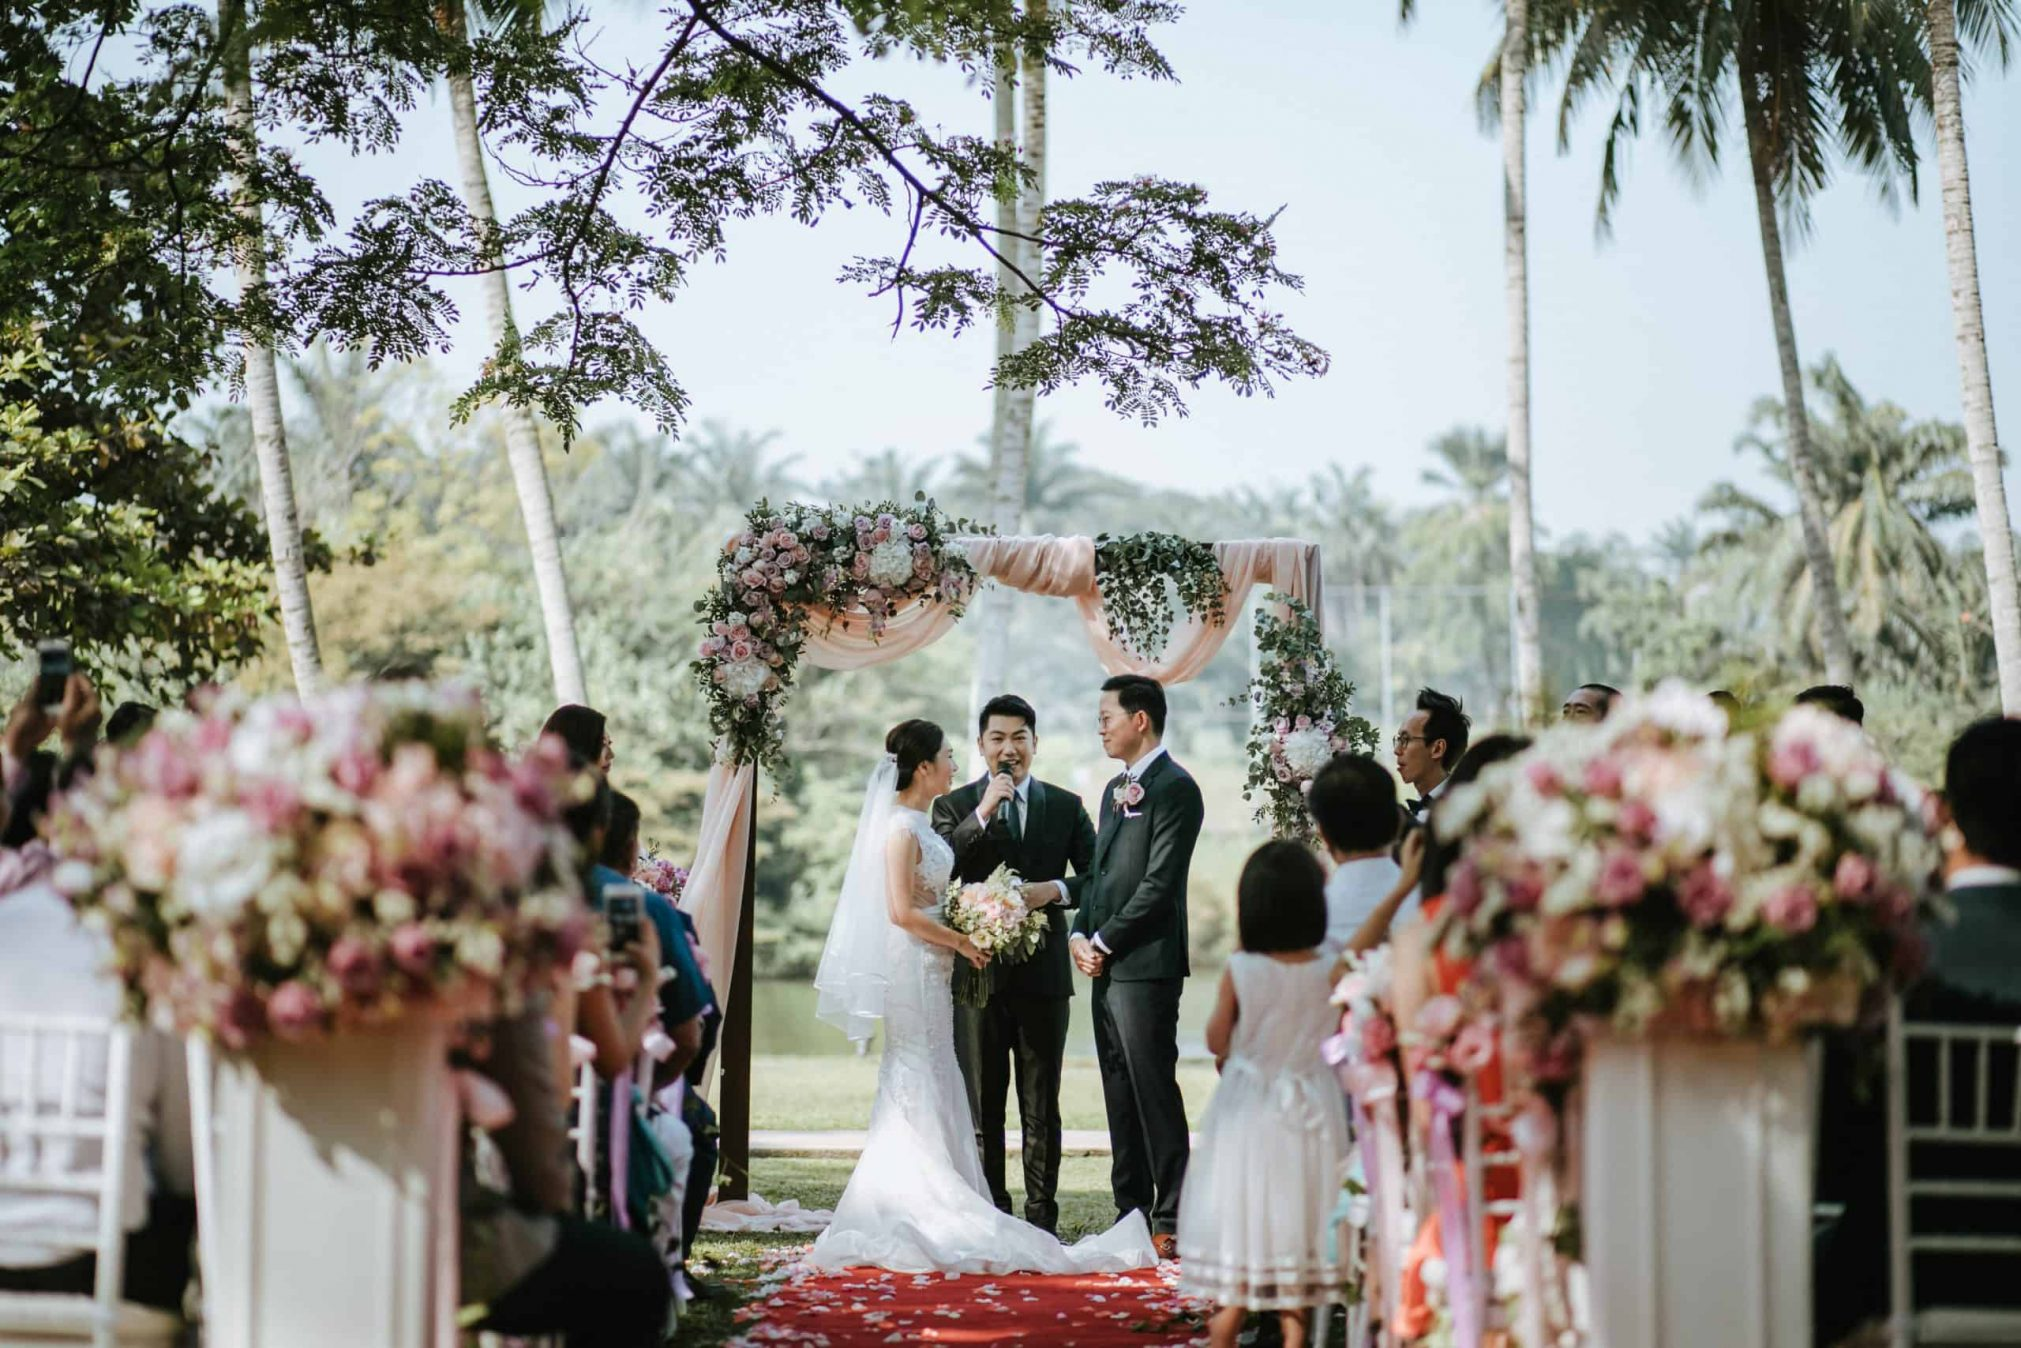 Garden Romantic Rustic Rosy Golden Wedding at The Saujana Hotel Subang Kuala Lumpur malaysia cliff choong the cross effects kevin tan destination portrait and wedding photographer malaysia kuala lumpur bride and groom couple kiss romantic intimate moment scene getting ready make up Ring Exchange Vows Bridesmaids Dress